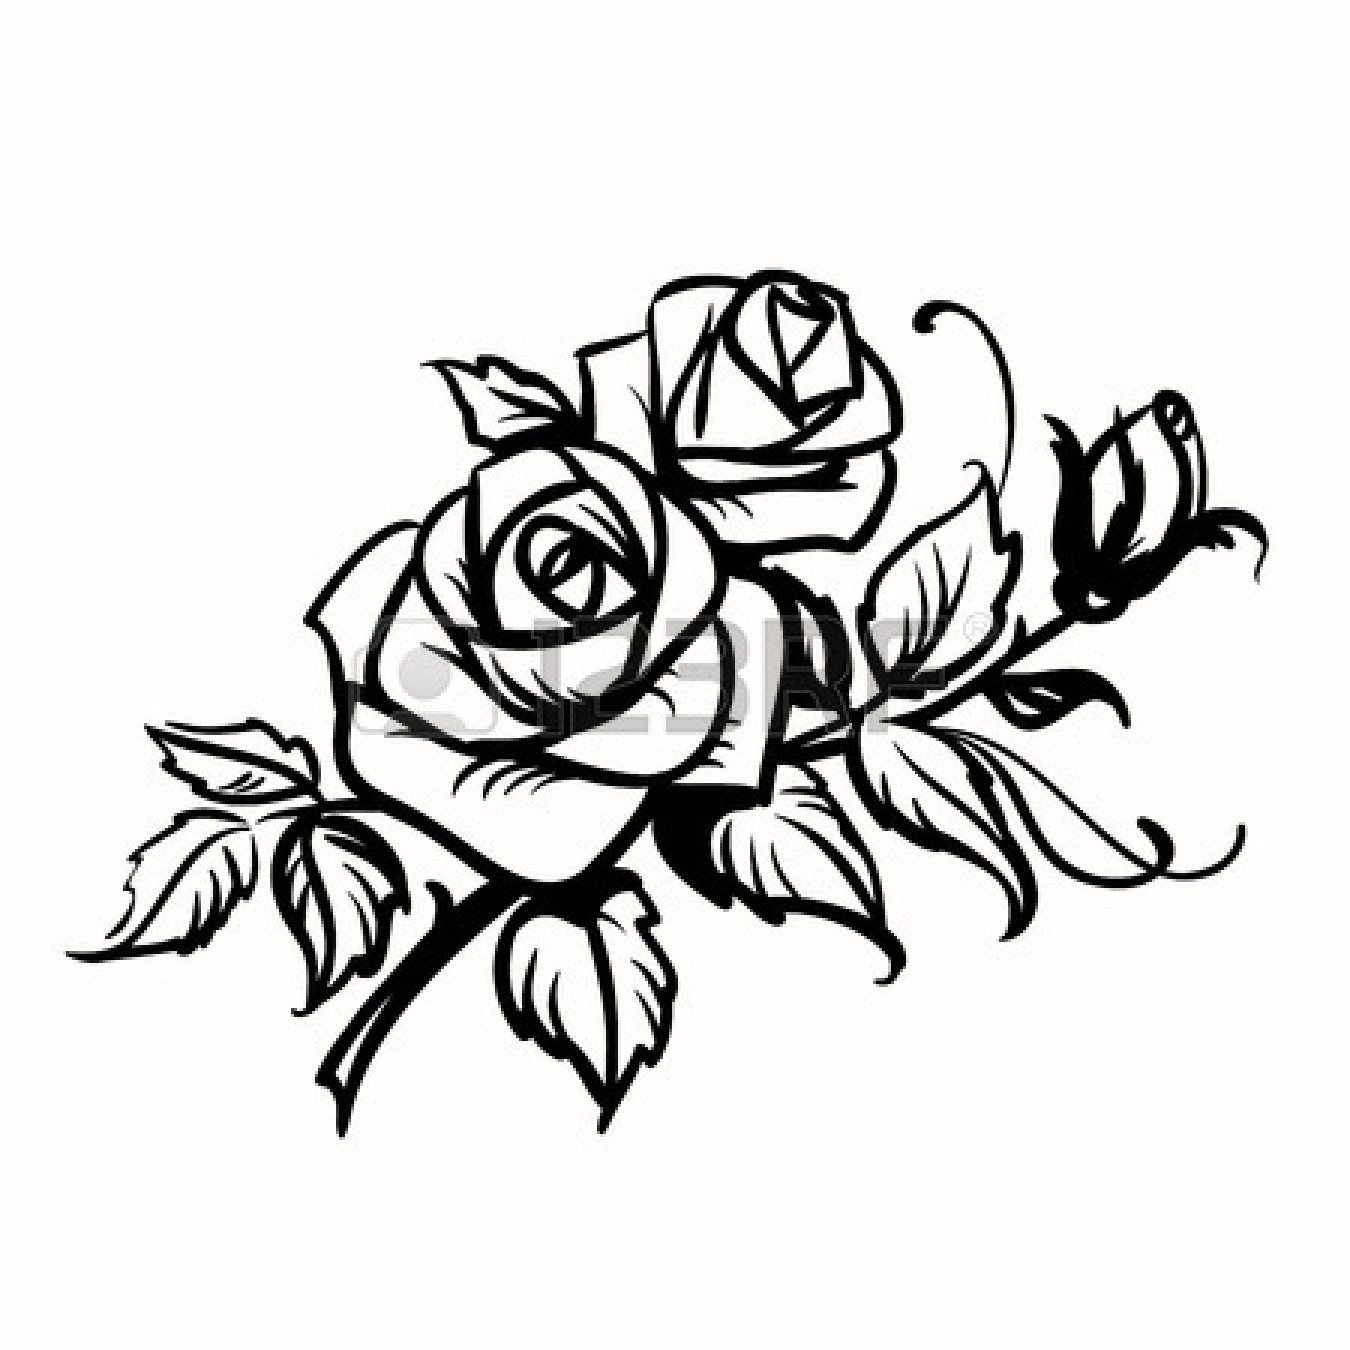 roses line drawing at getdrawings com free for personal use roses rh getdrawings com rose line art png rose line art tattoo